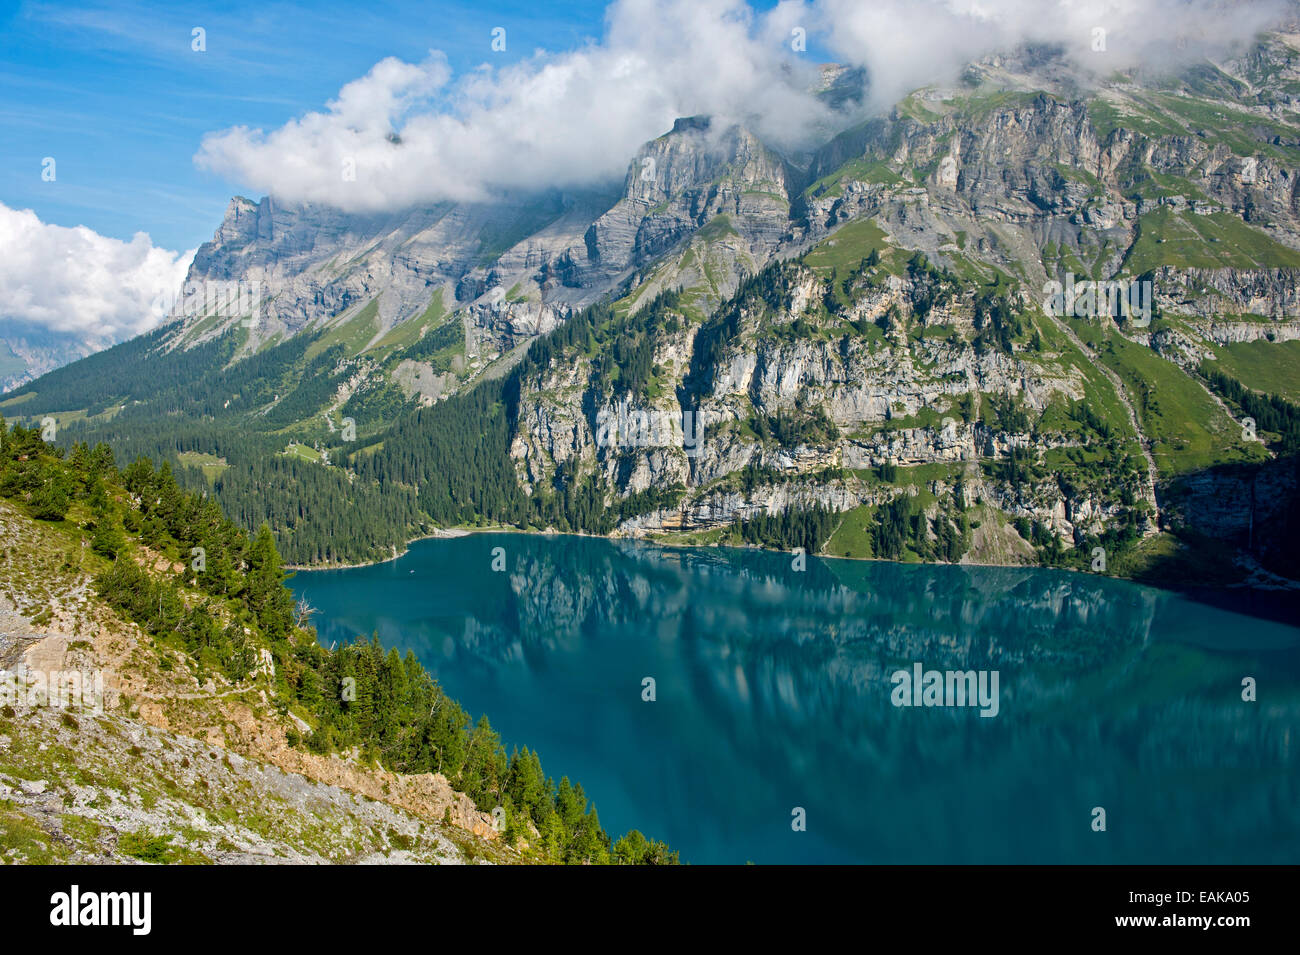 Oeschinen Lake in a UNESCO World Natural Heritage Site of the Swiss Alps, Kandersteg, Bernese Oberland, Canton of - Stock Image